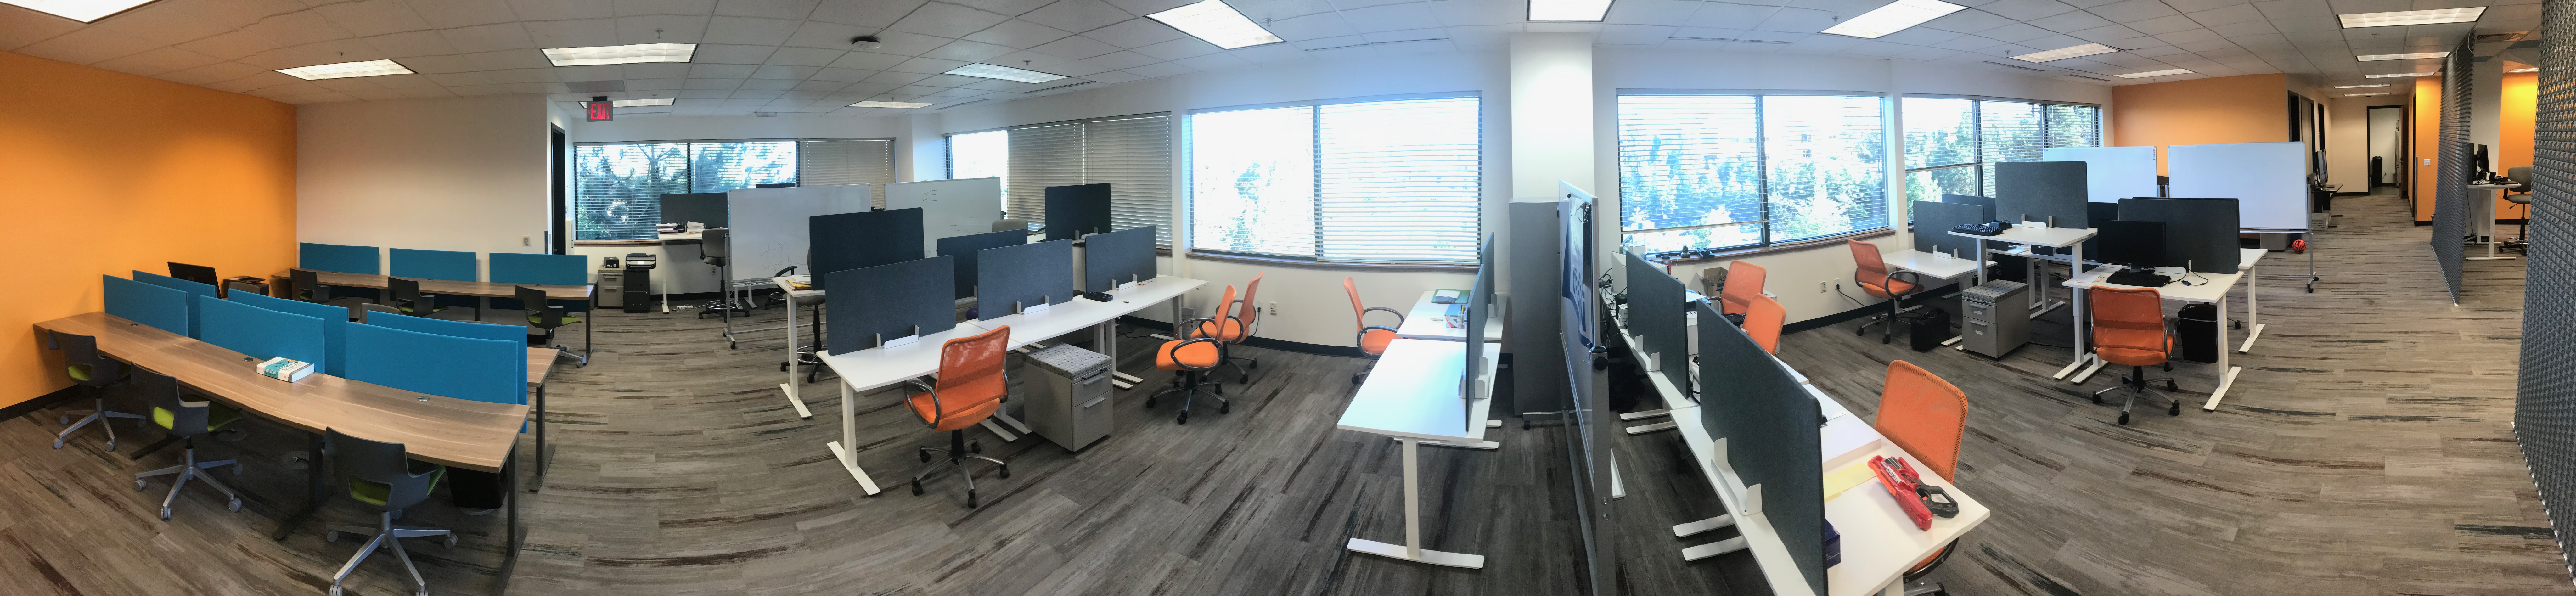 The Co-Lab's co-working space has a variety of flex and dedicated desks.